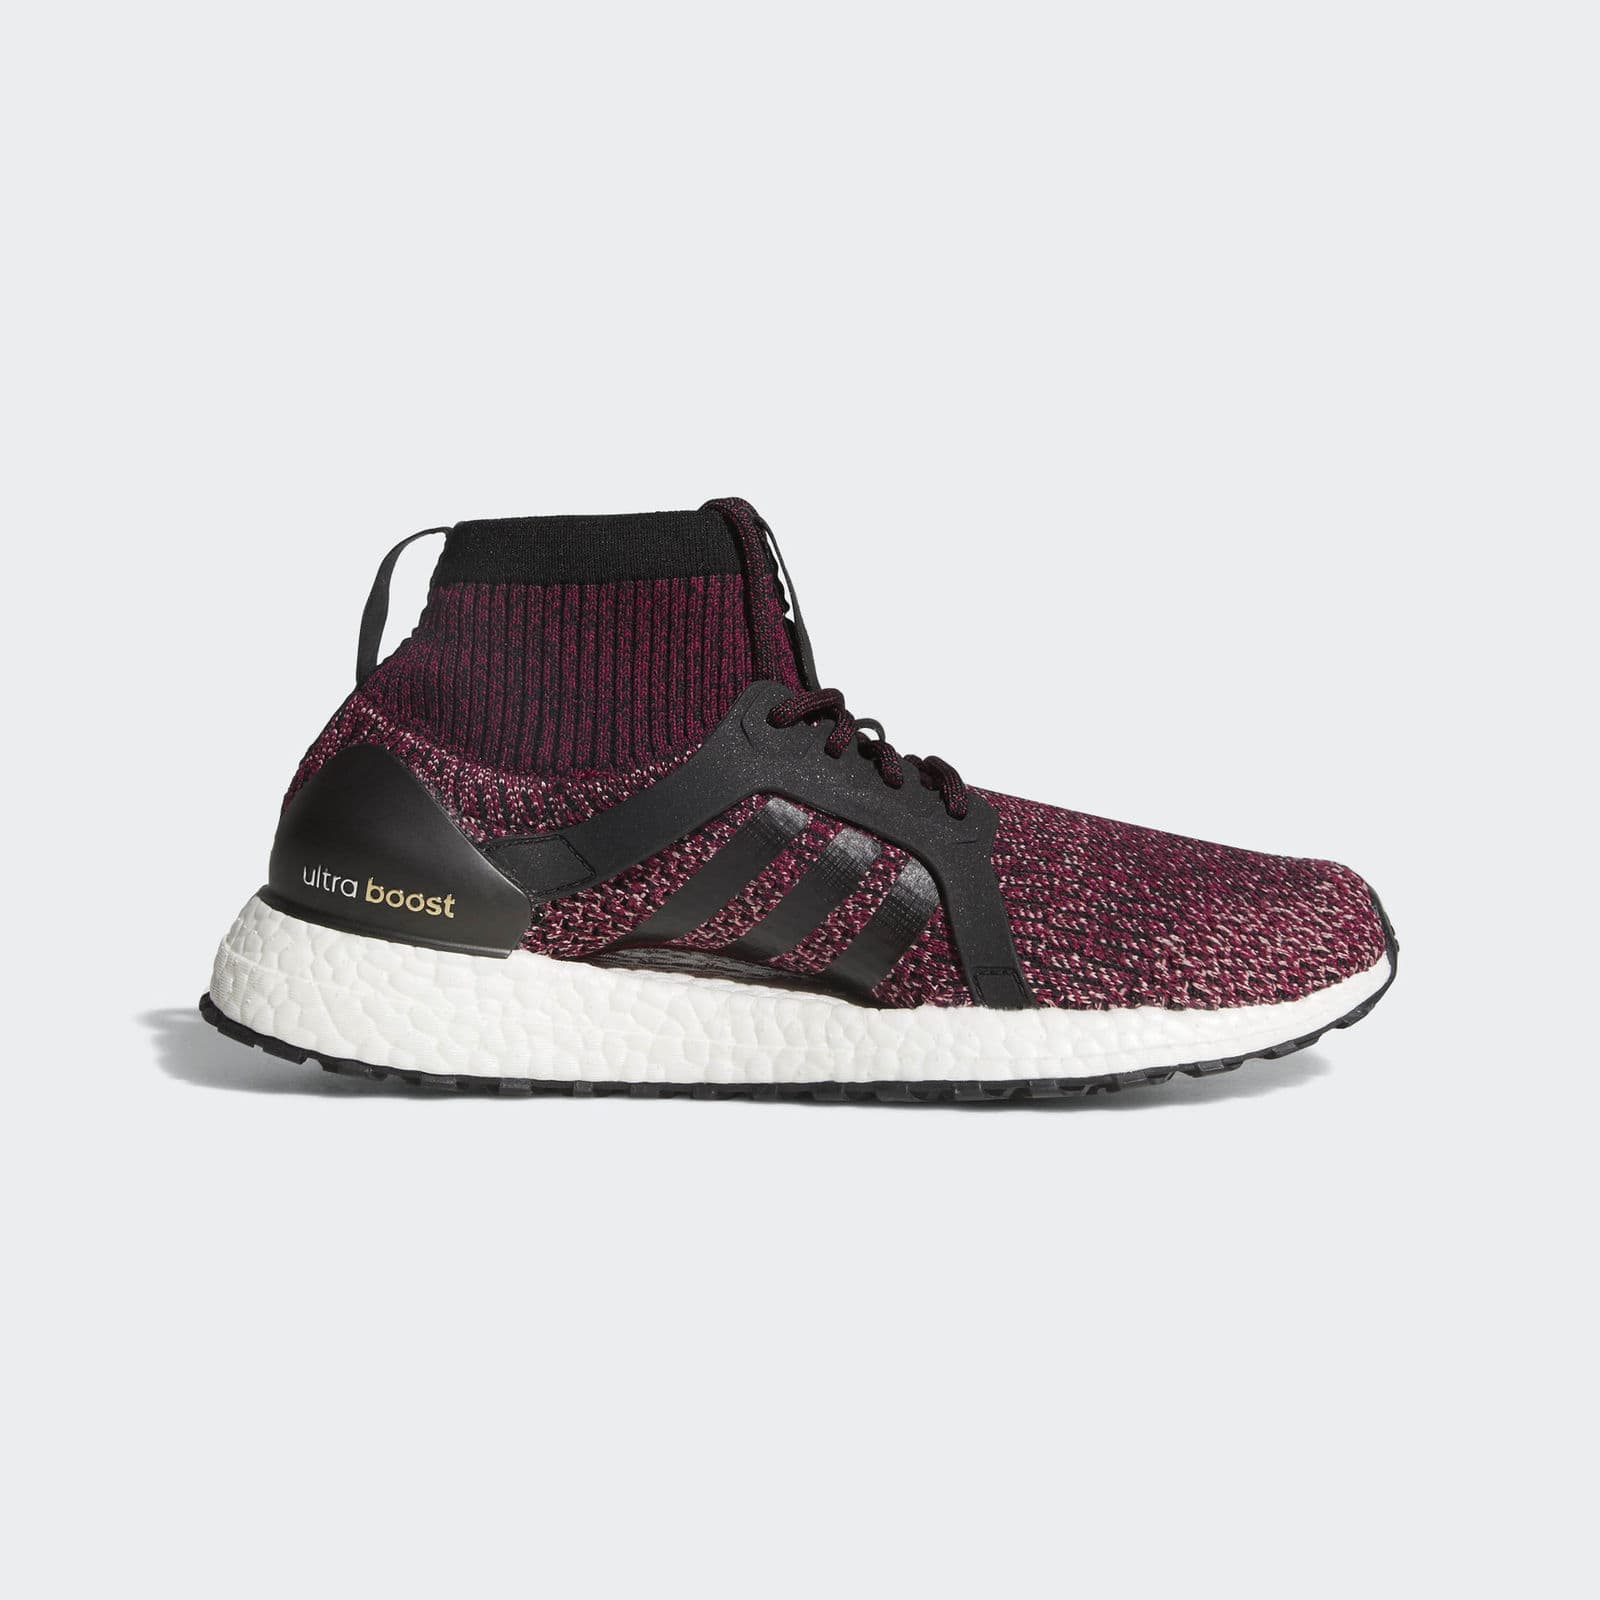 0cd1a8e18 adidas Ultraboost  Women s X Clima or X All Terrain Shoes ...